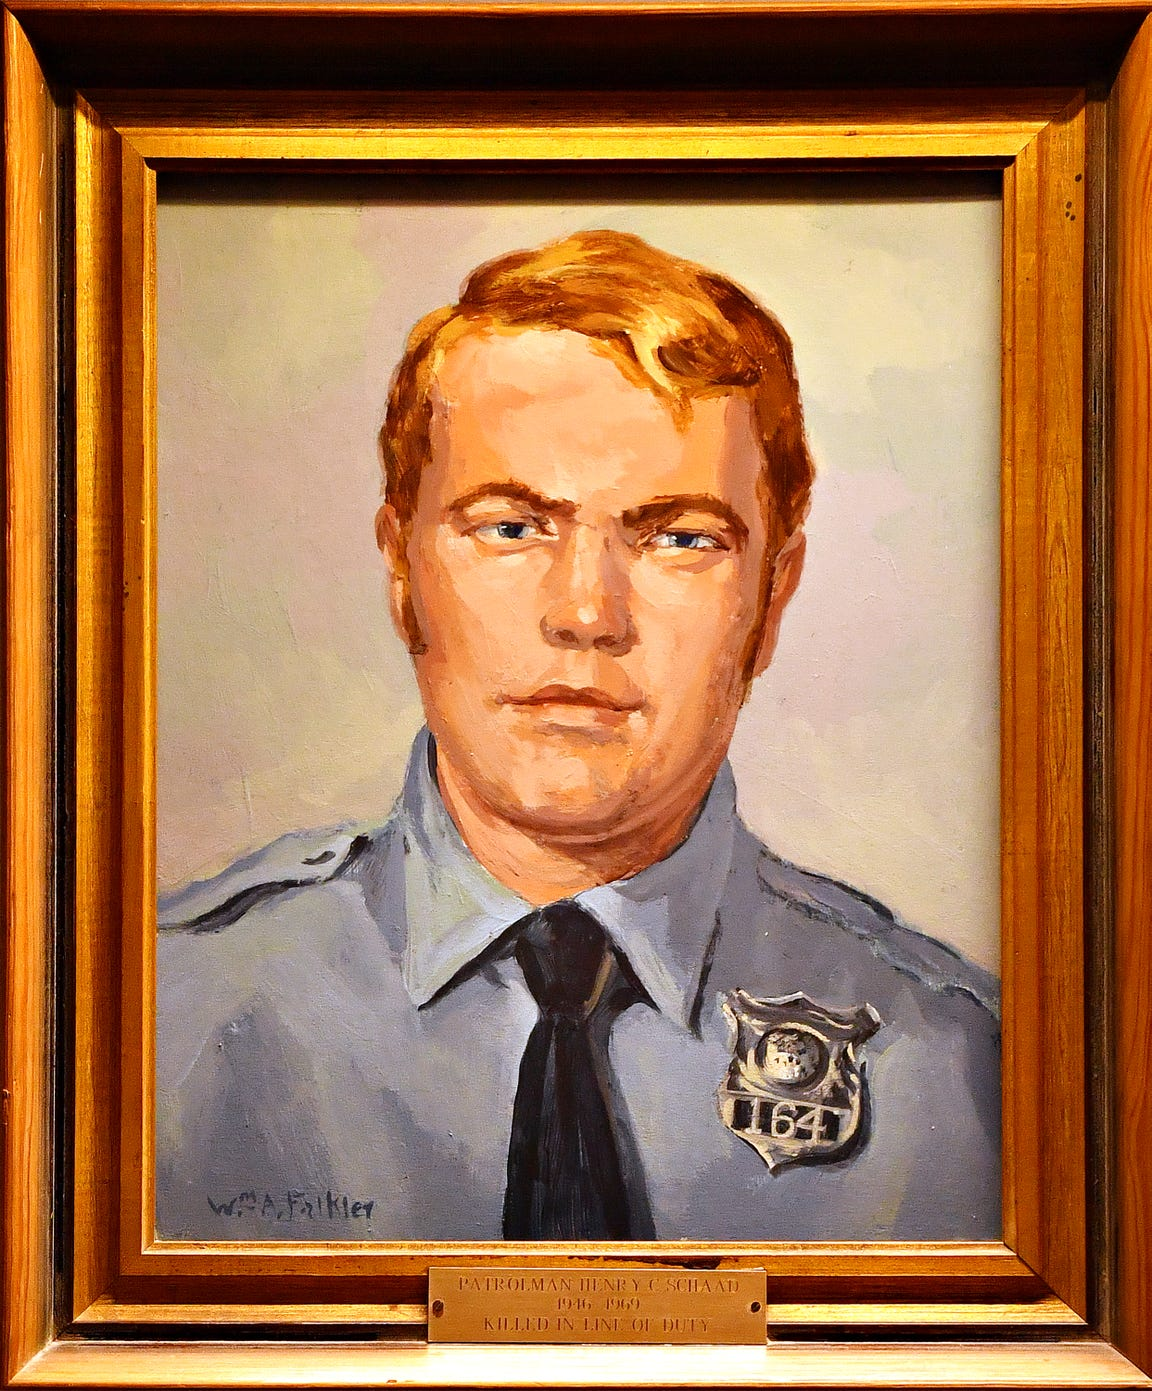 A portrait of Patrolman Henry C. Schaad, 22. hangs on the wall inside the York City Police Department, Wednesday, July 9, 2019. Schaad was mortally wounded in the line of duty during the York race riots on July 18, 1969. Dawn J. Sagert photo